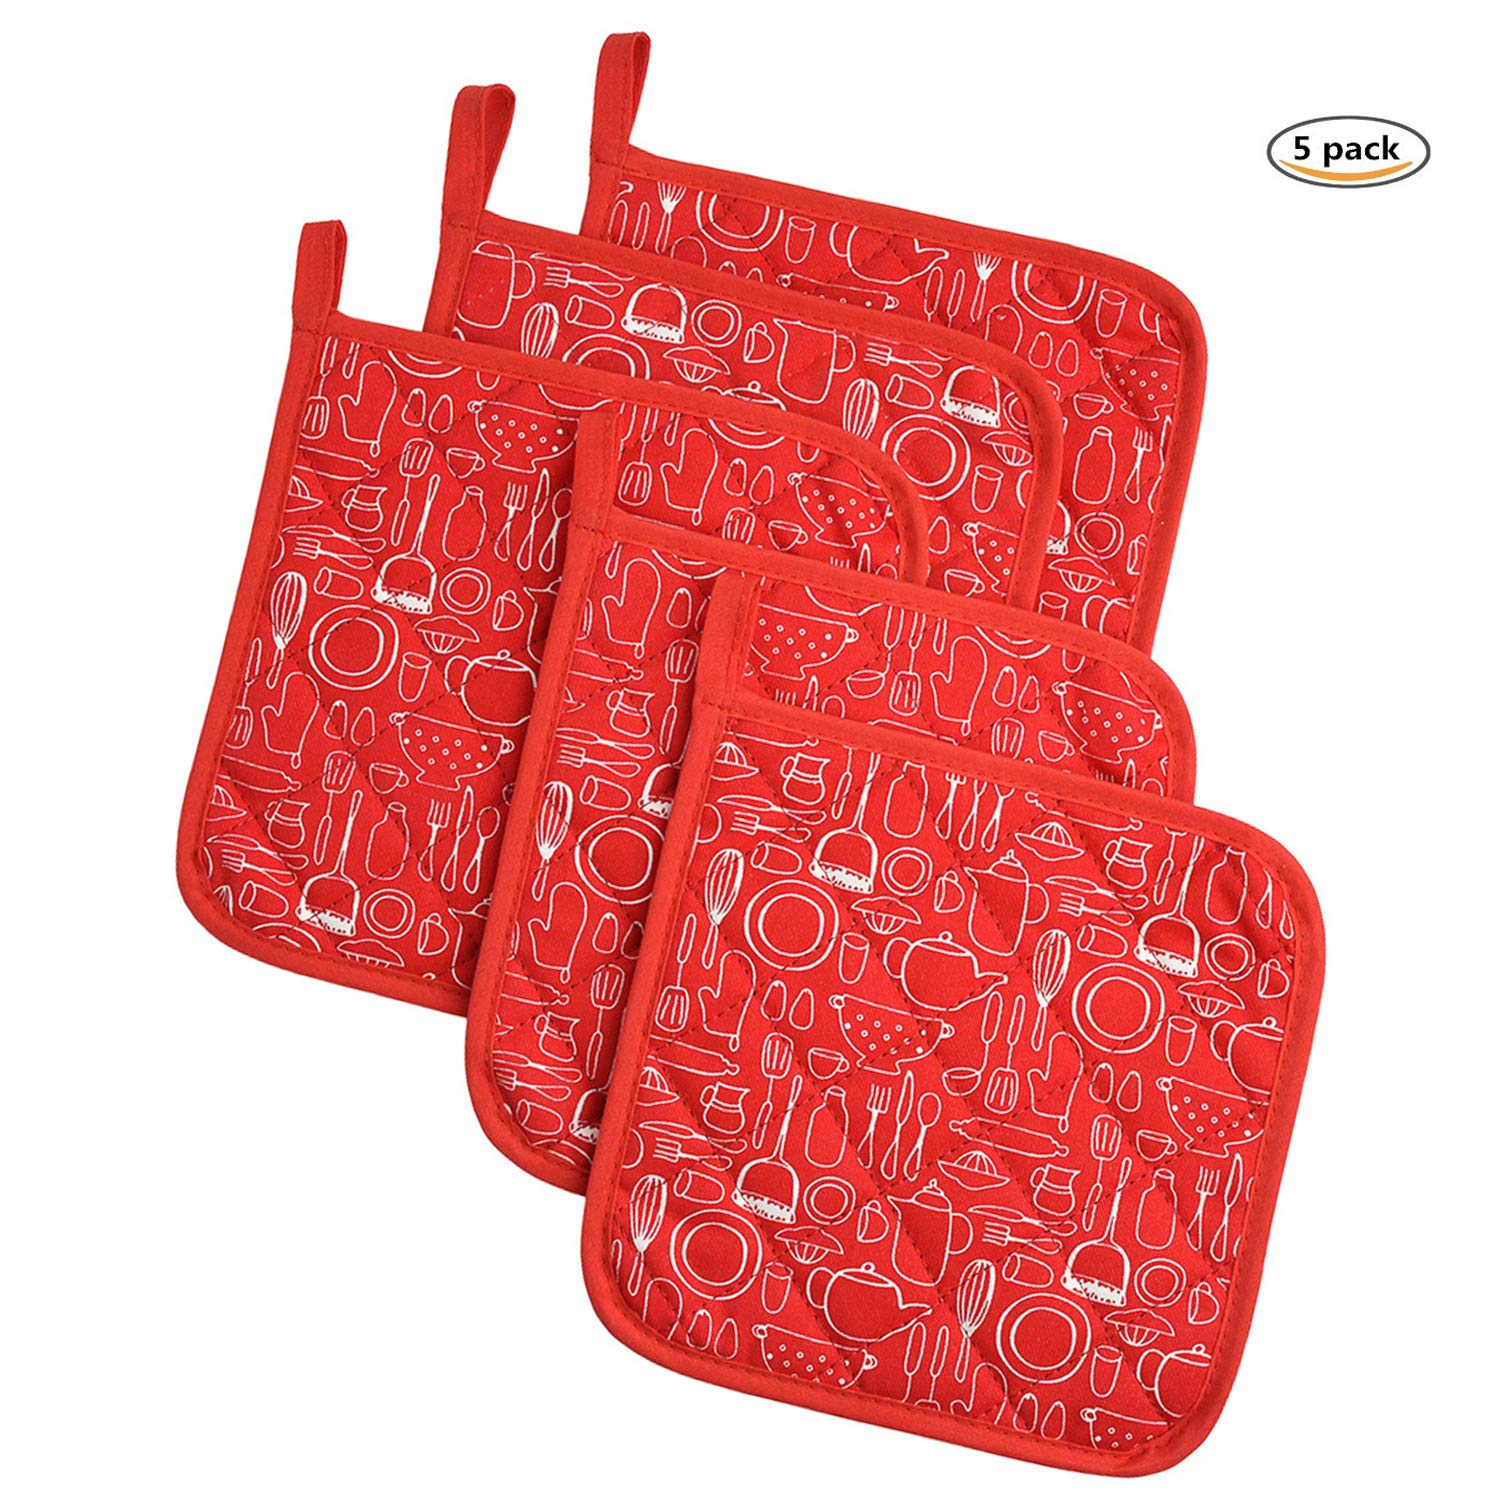 Potholders Trivets Kitchen Heat Resistant Cotton Coasters Hot Pads Pot Holders Set of 5 For Everyday Cooking And Baking by 8 x 8Inch (Red)